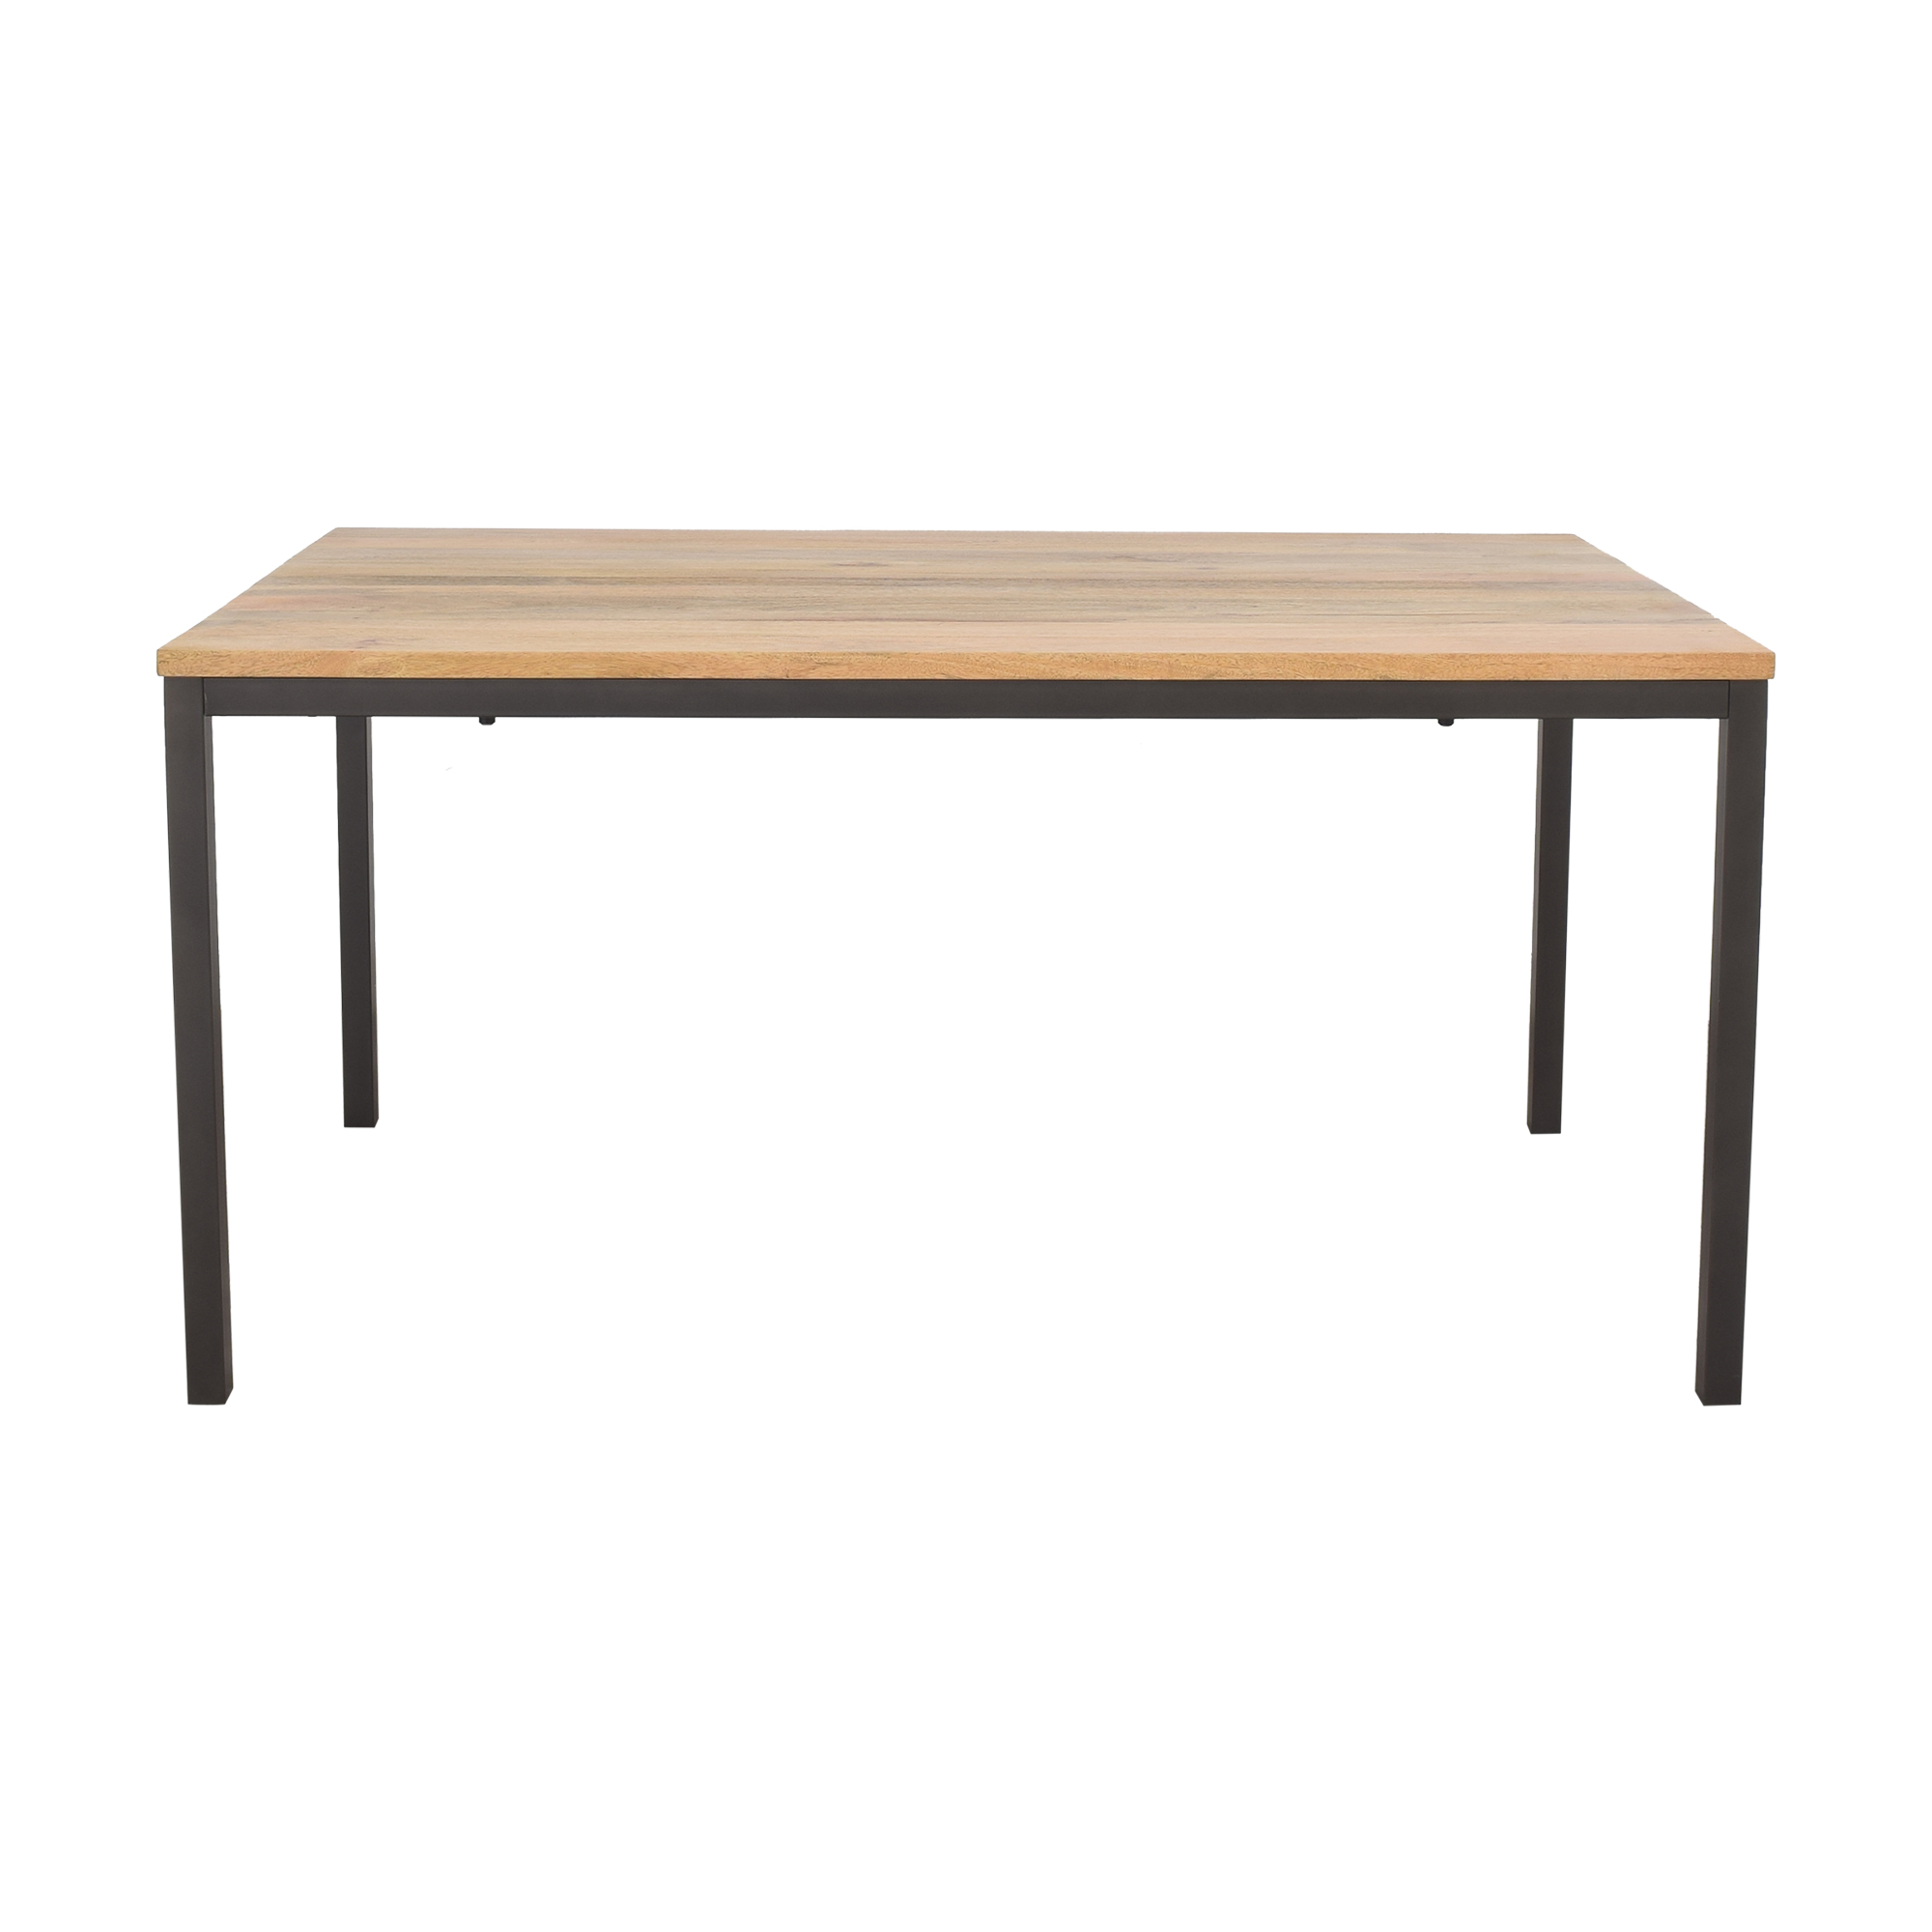 West Elm West Elm Box Frame Dining Table price